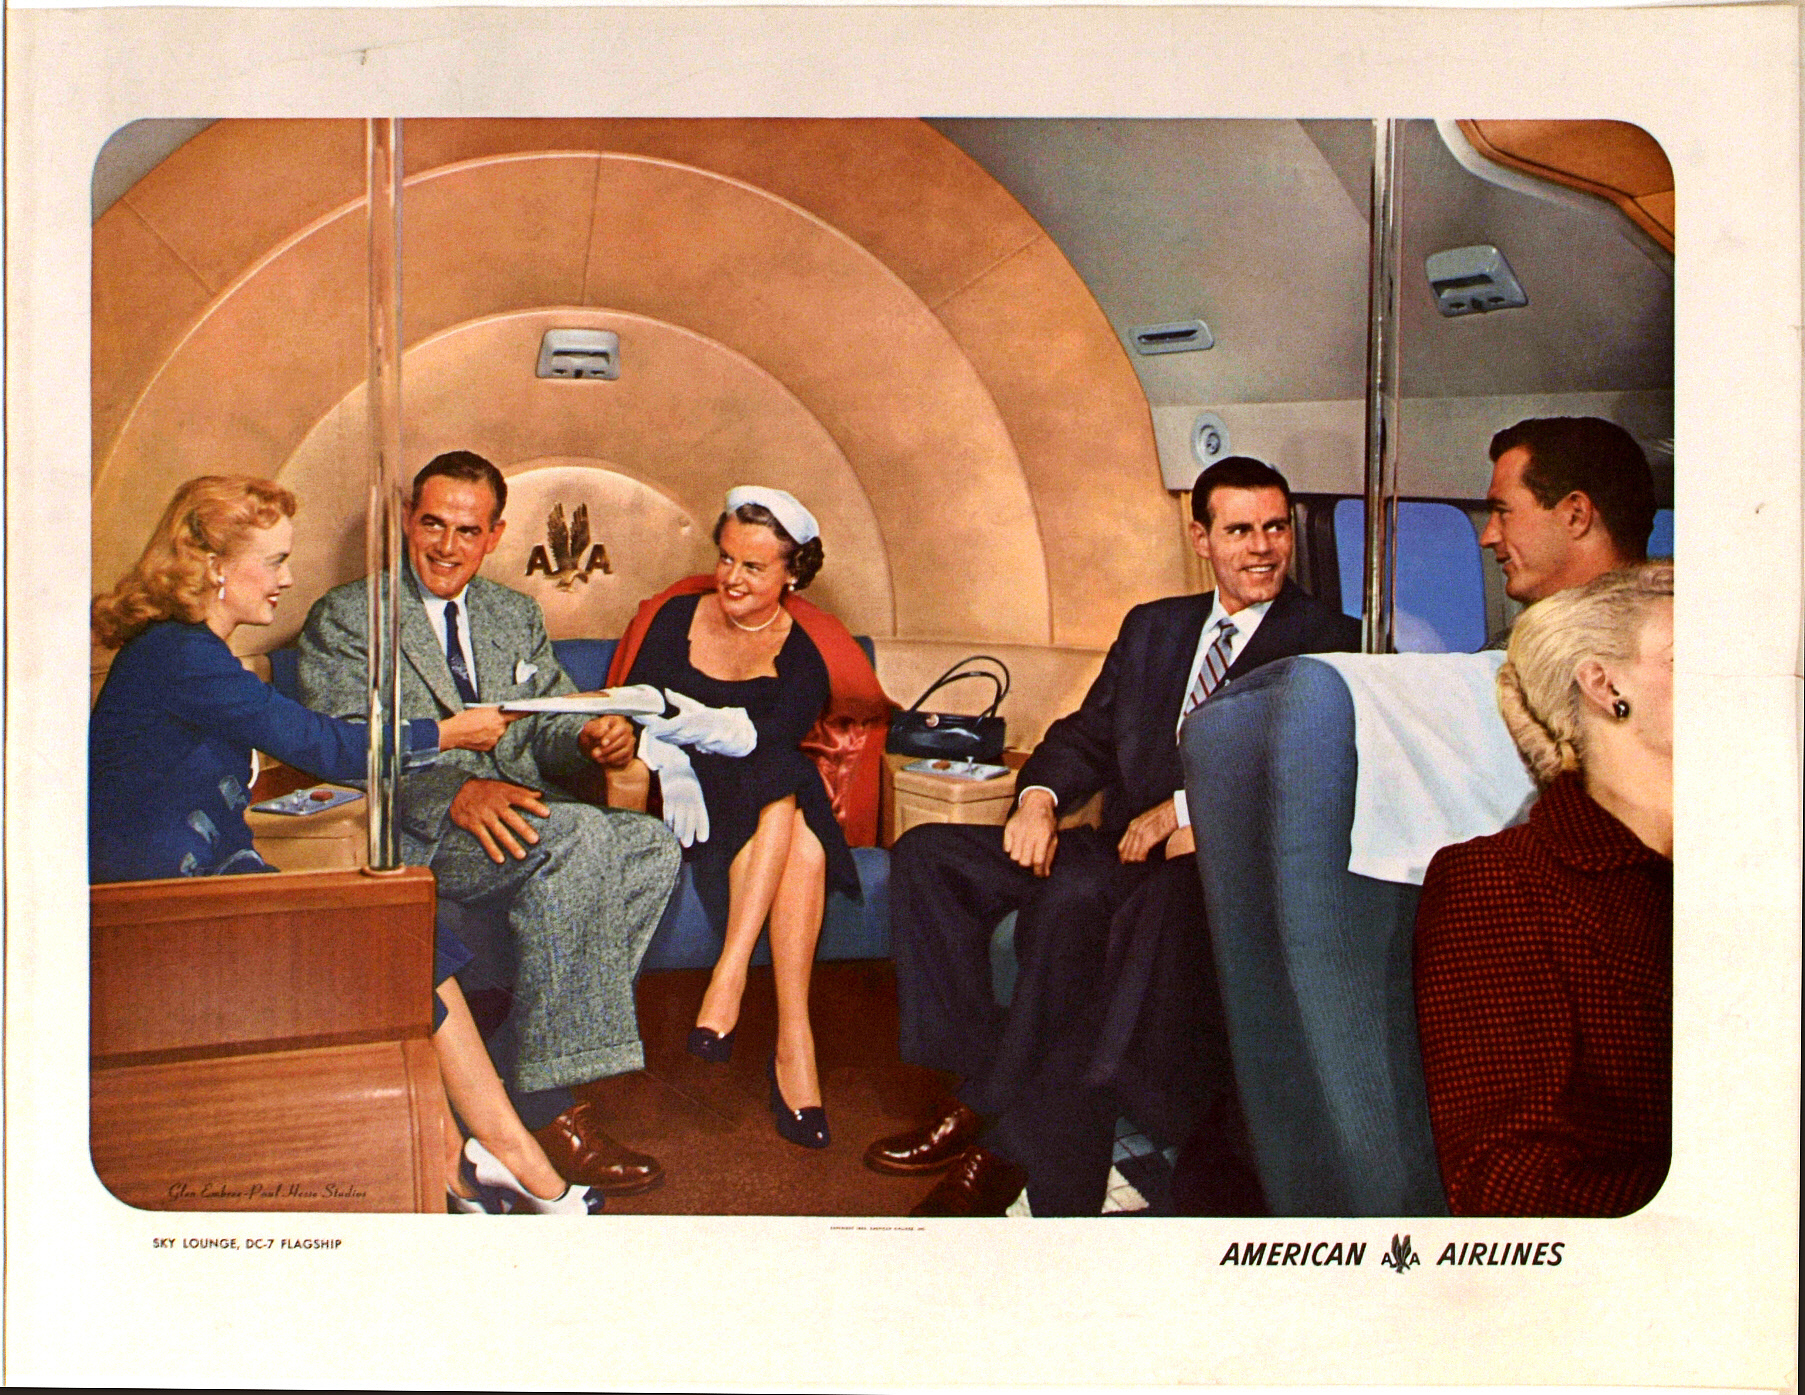 images for American Airlines Sky Lounge, DC-7 Flagship